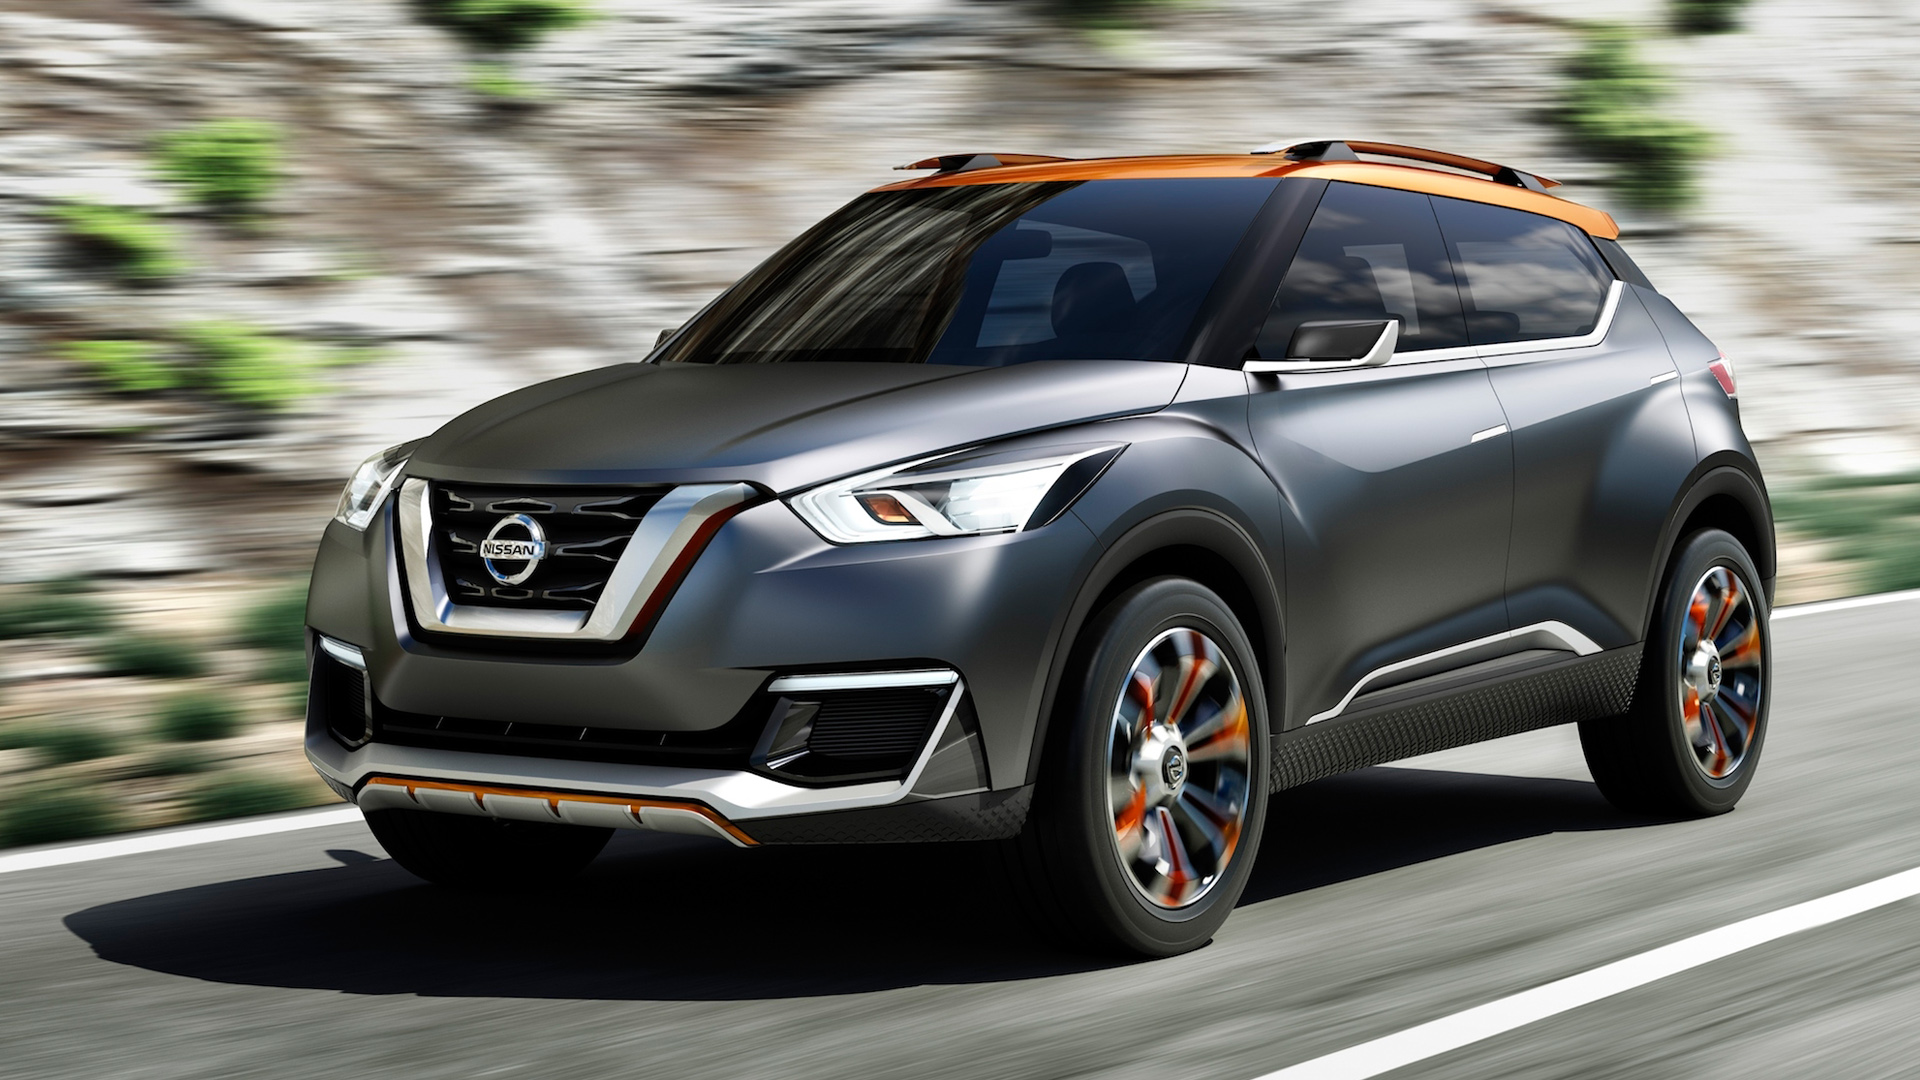 Hd Nfs Cars Wallpapers Nissan Kicks Concept Wallpaper Hd Car Wallpapers Id 4904